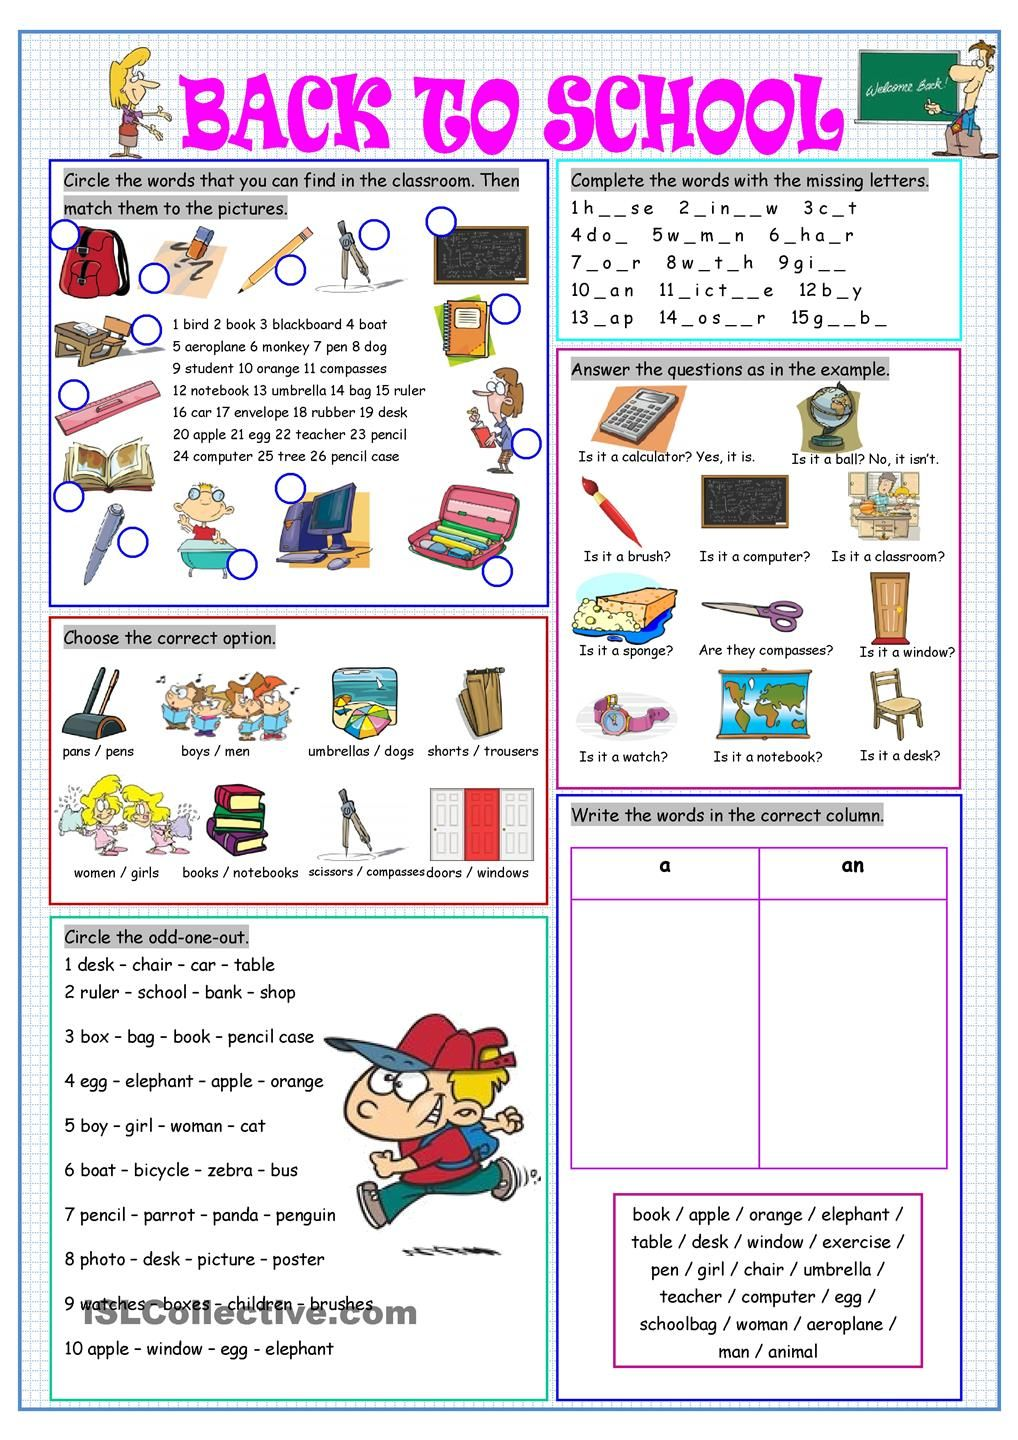 Back to School | worksheets, activities | Pinterest | Englisch ...